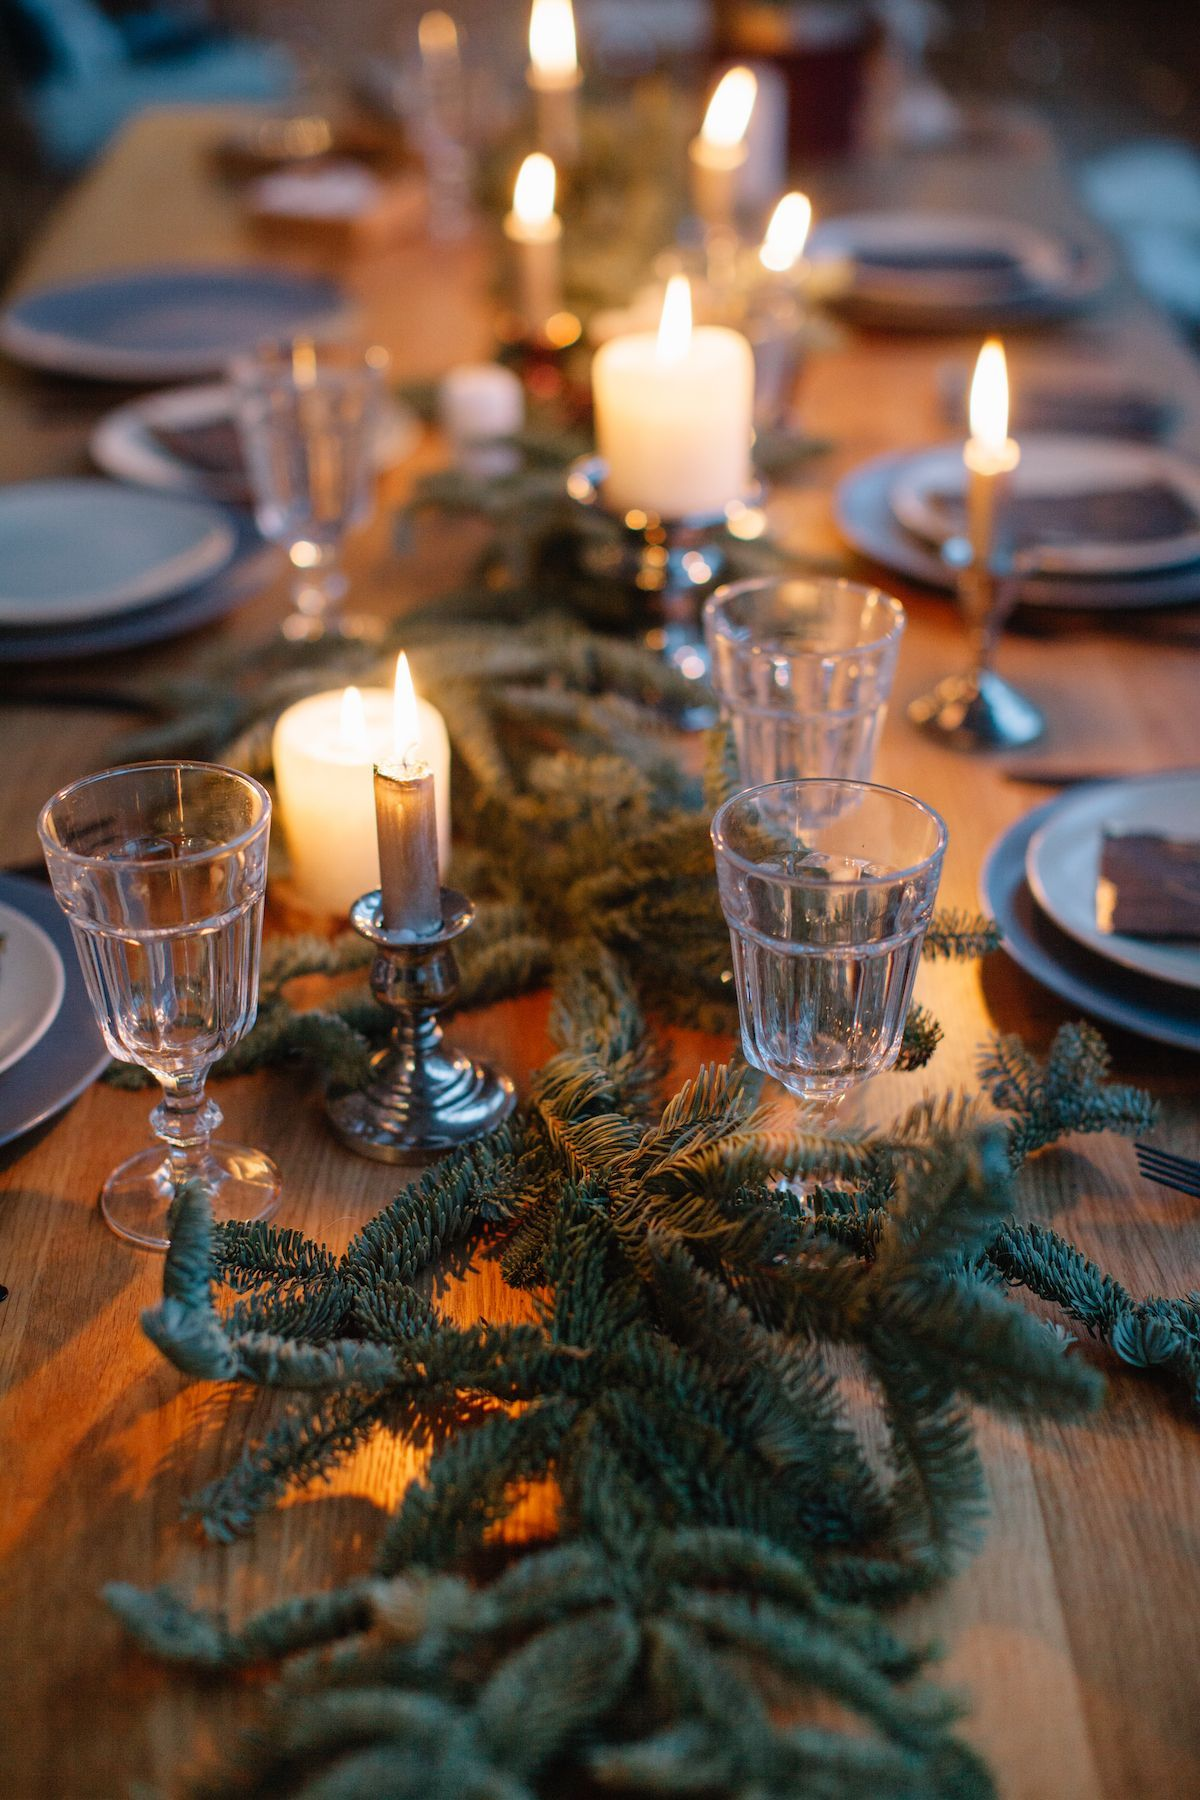 Elegant table with small candle sticks and traditional glassware.